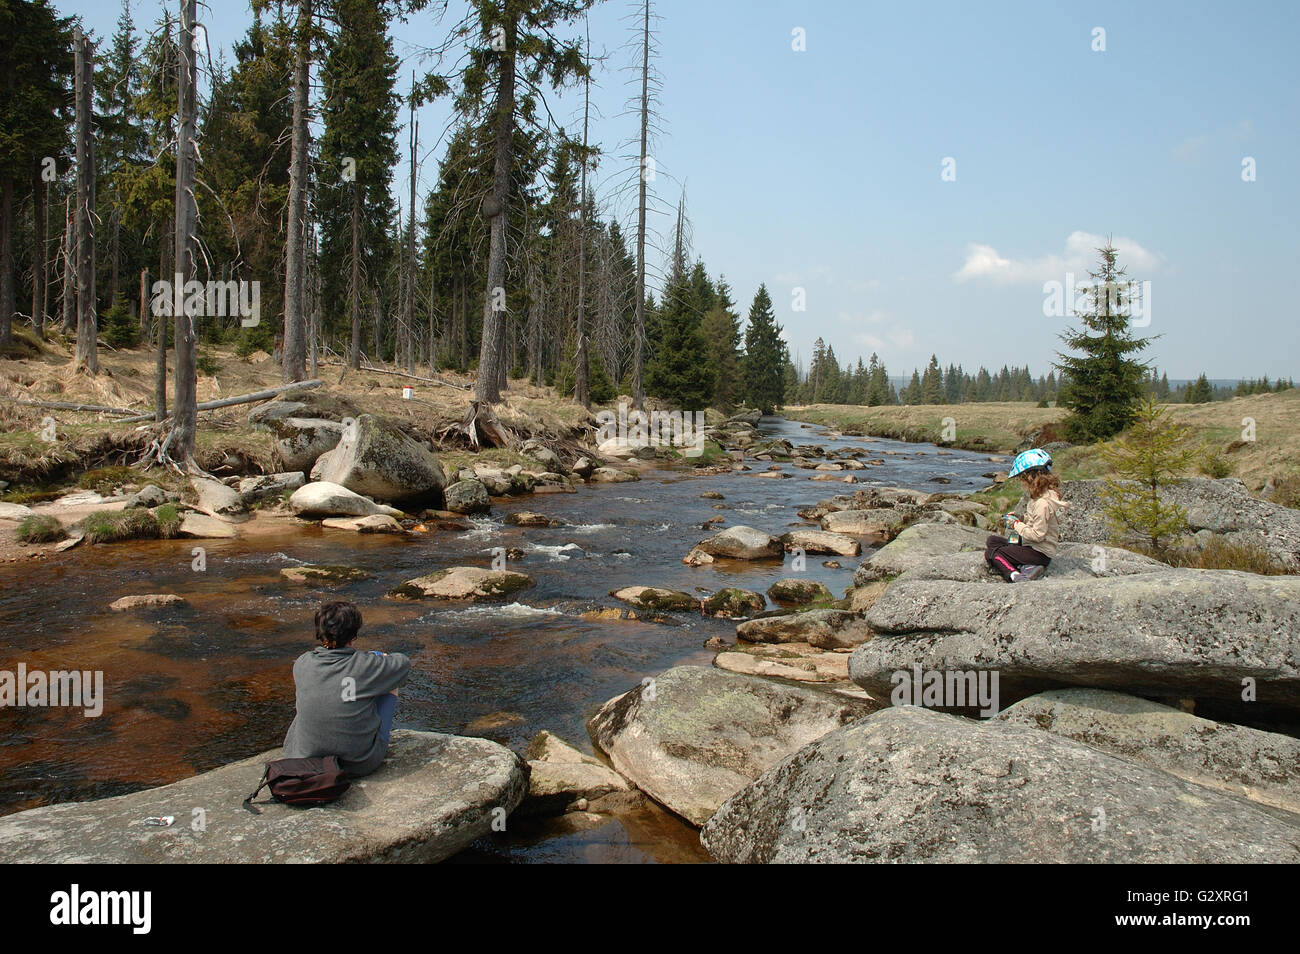 JAKUSZYCE, POLAND - APRIL 30: Unidentified woman and kid resting on rocks on river bank in izerskie mountains in - Stock Image